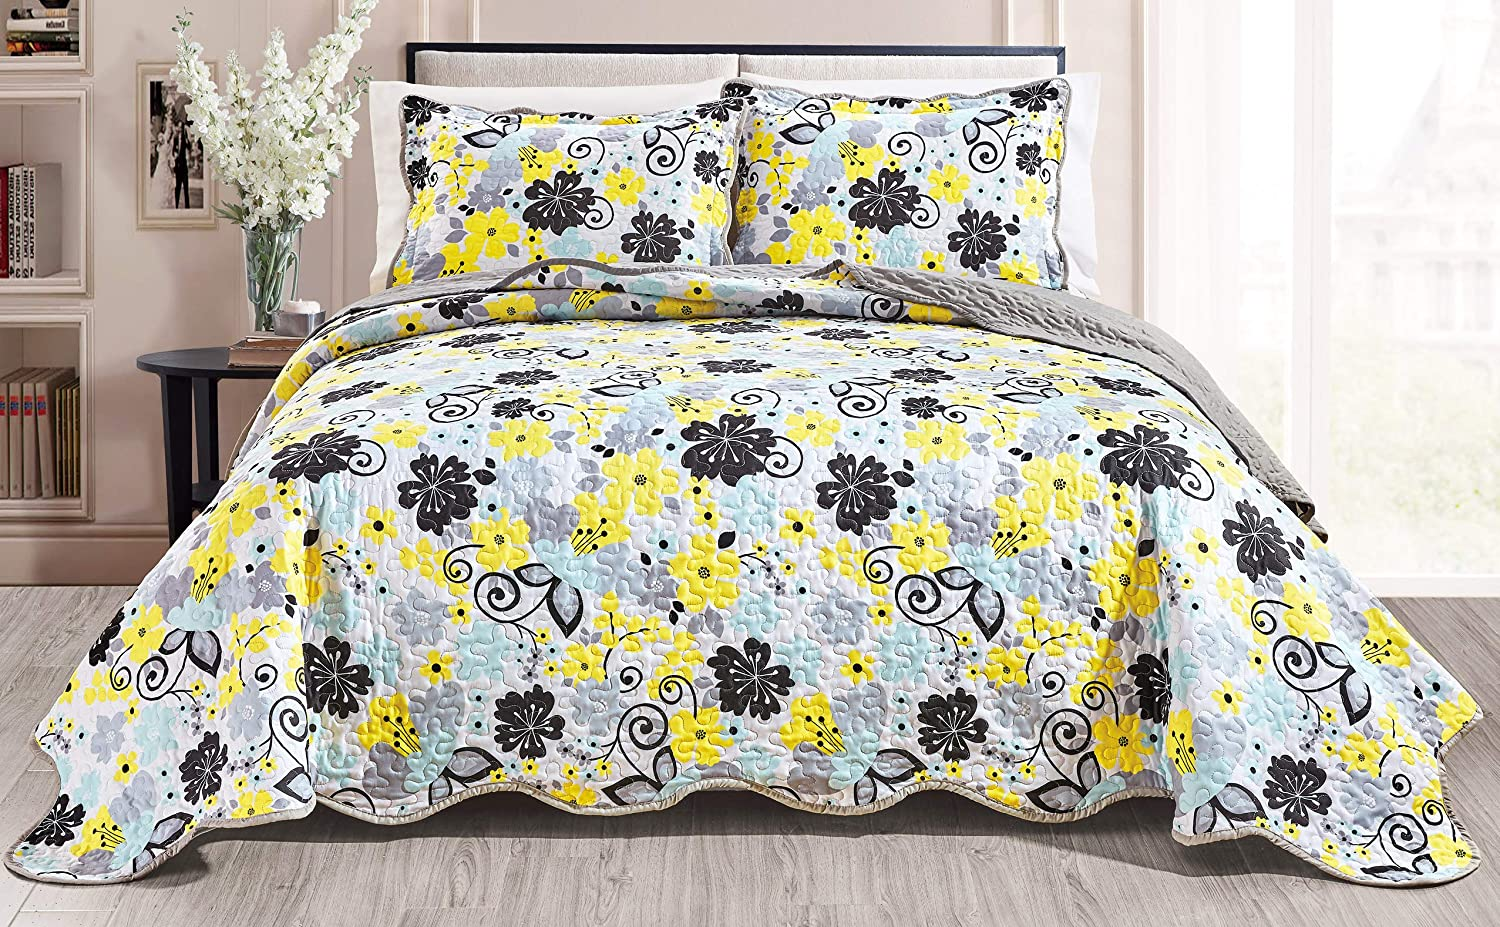 Quilt Set Reversible Bedspread Coverlet King Size Bed Cover (Yellow, Black, Grey, Aqua Blue Floral)